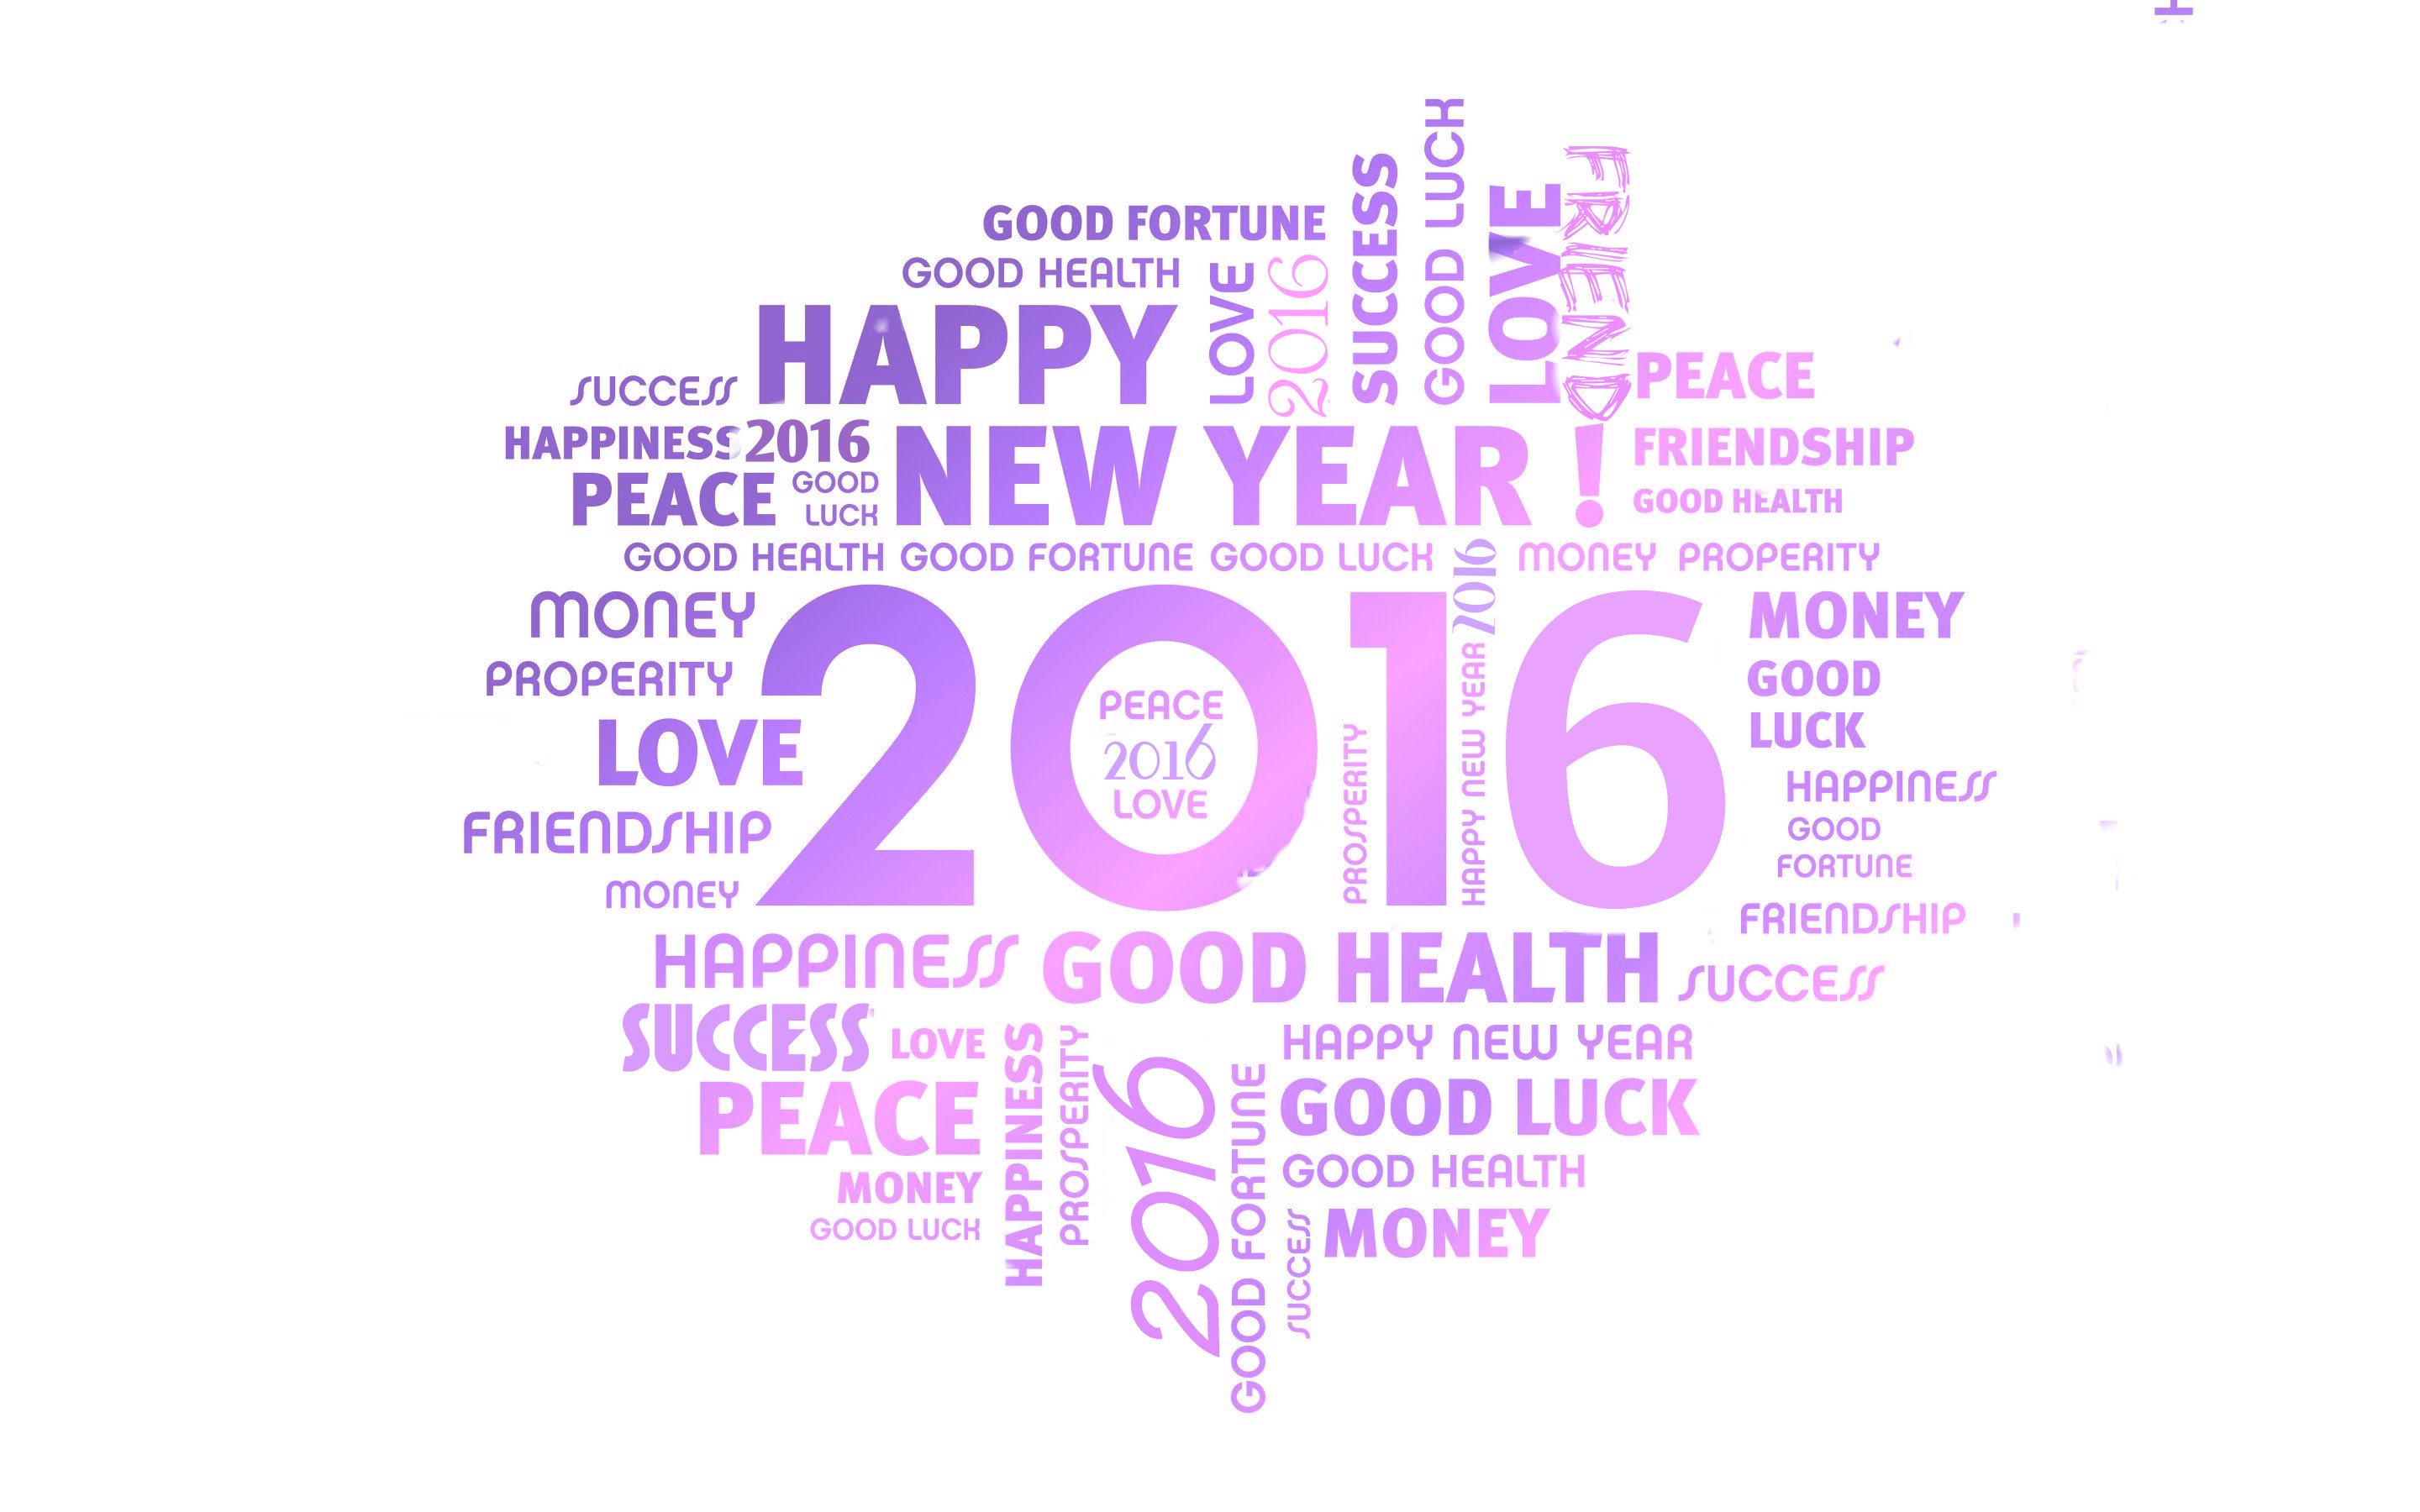 Happy new year mwiings 2016 new year greetings m4hsunfo